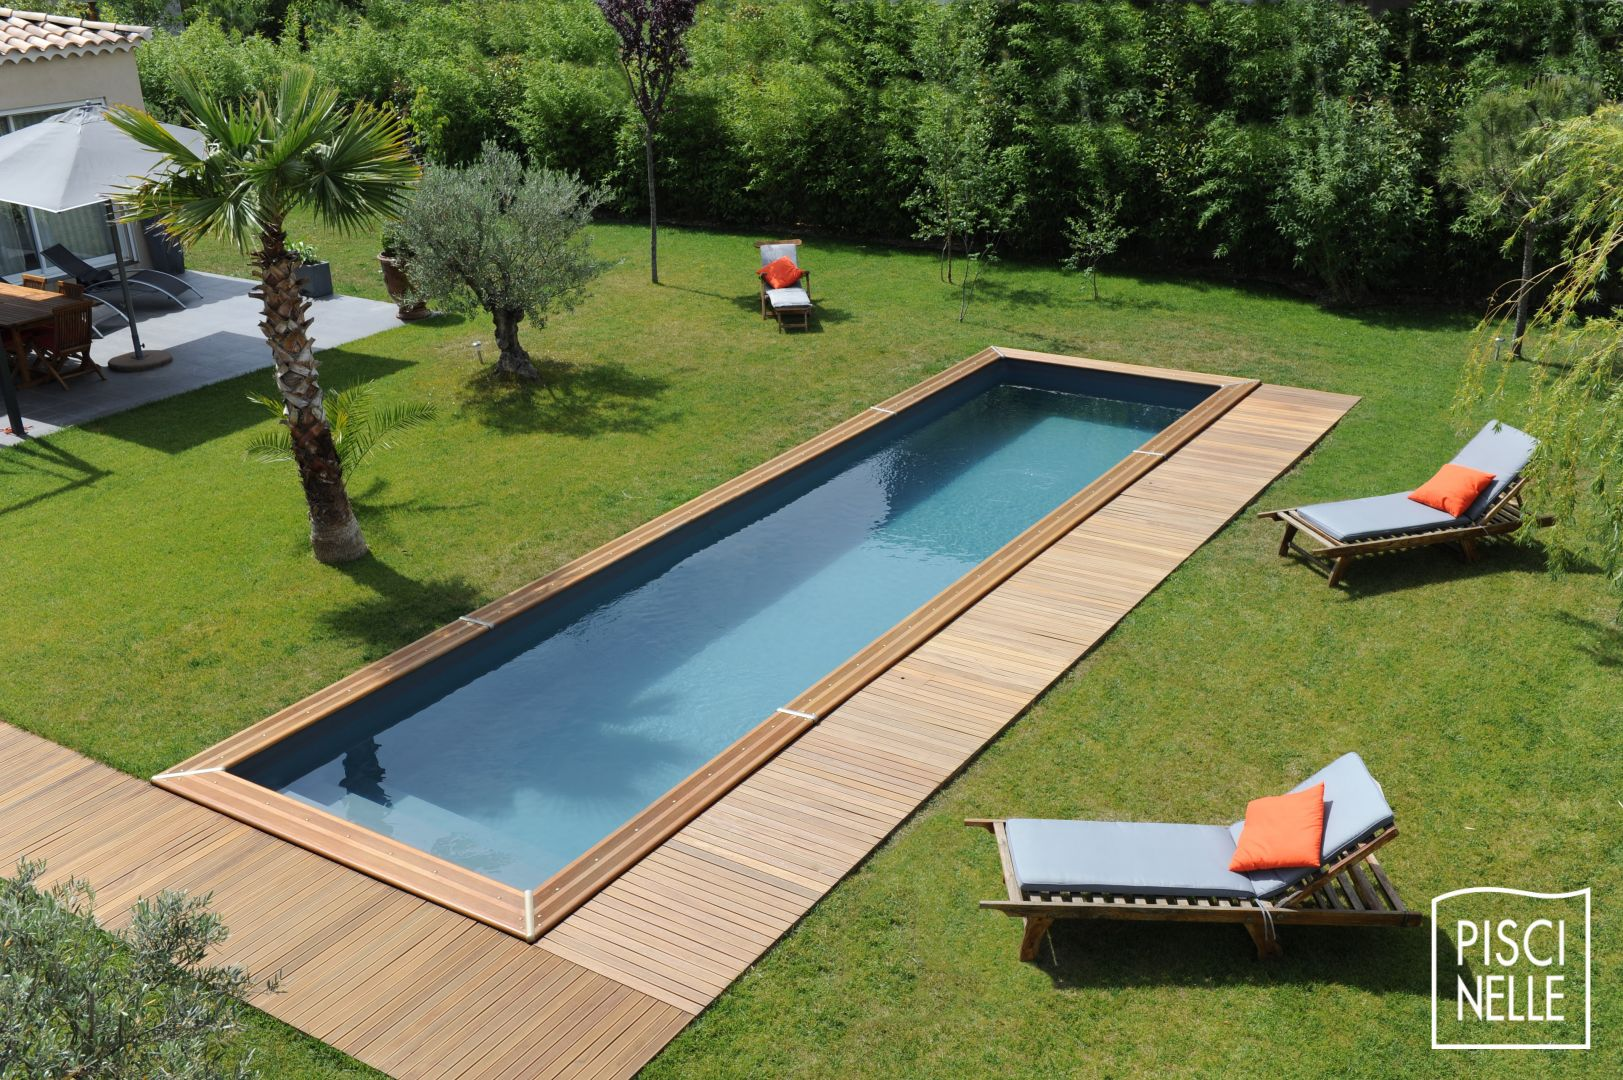 Piscine enterr e les piscines enterr es en kit par for Tarif piscine enterree